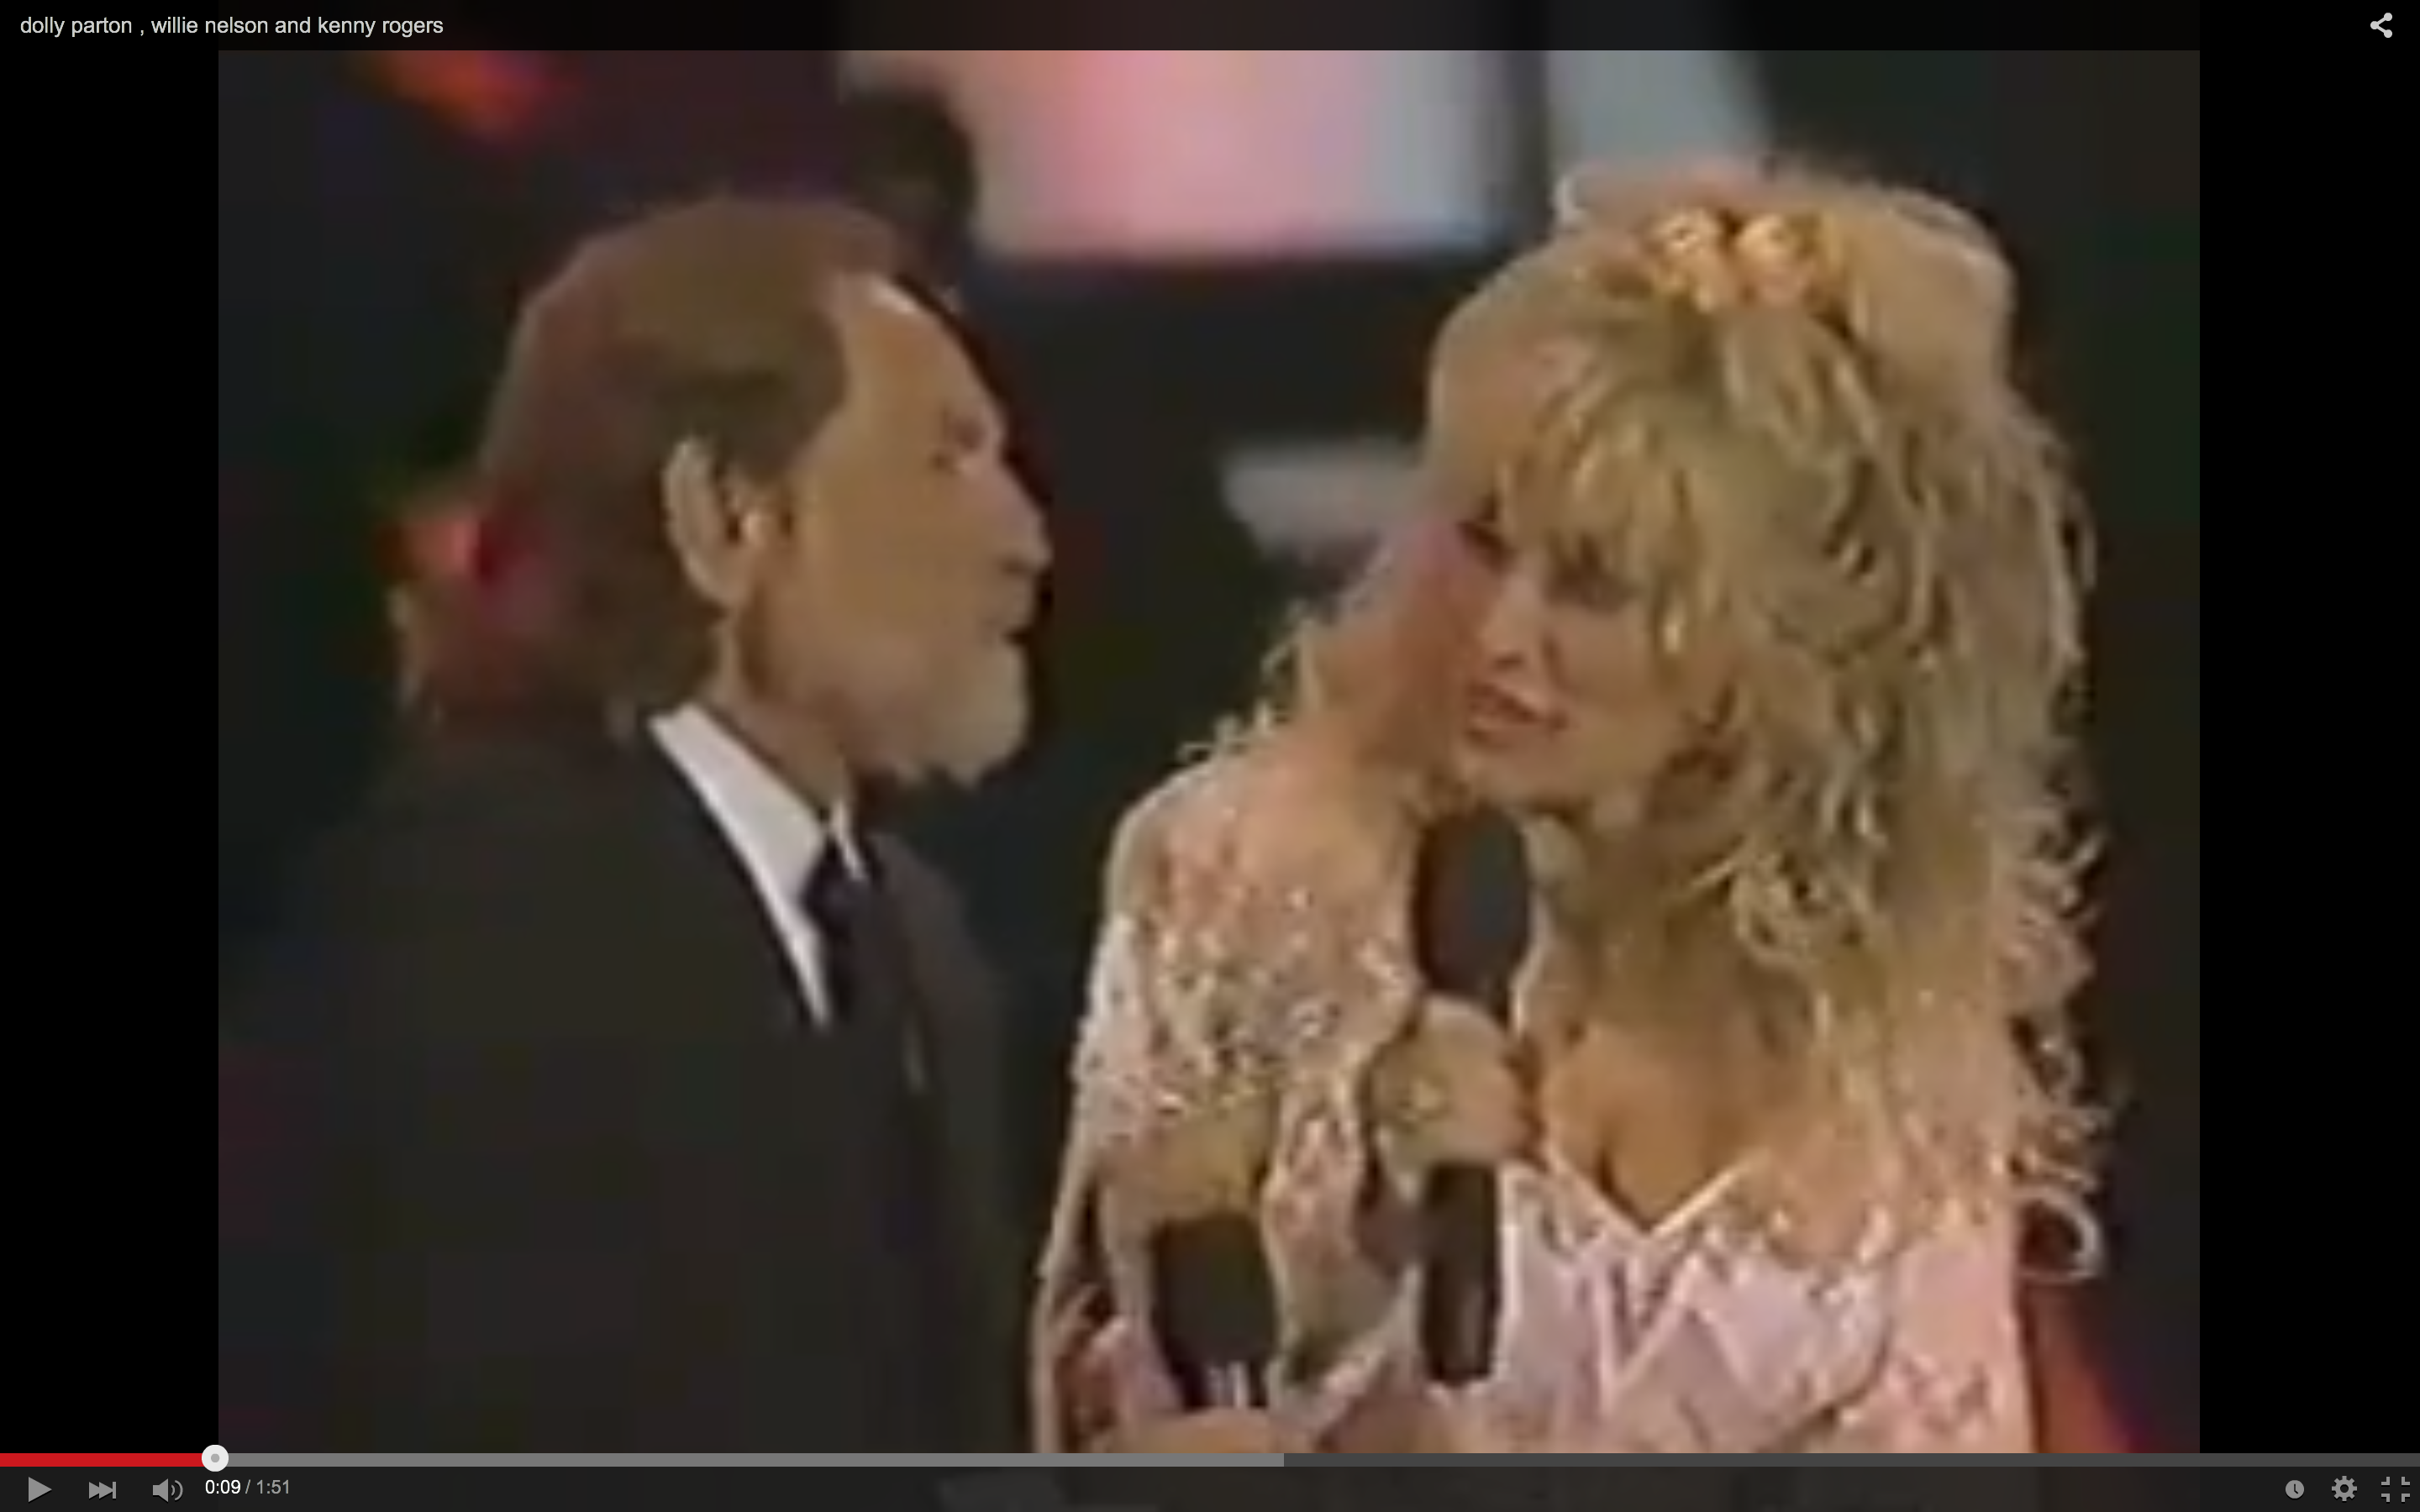 Flashback: Willie Nelson, Dolly Parton, Kenny Rogers Swap Hits ...